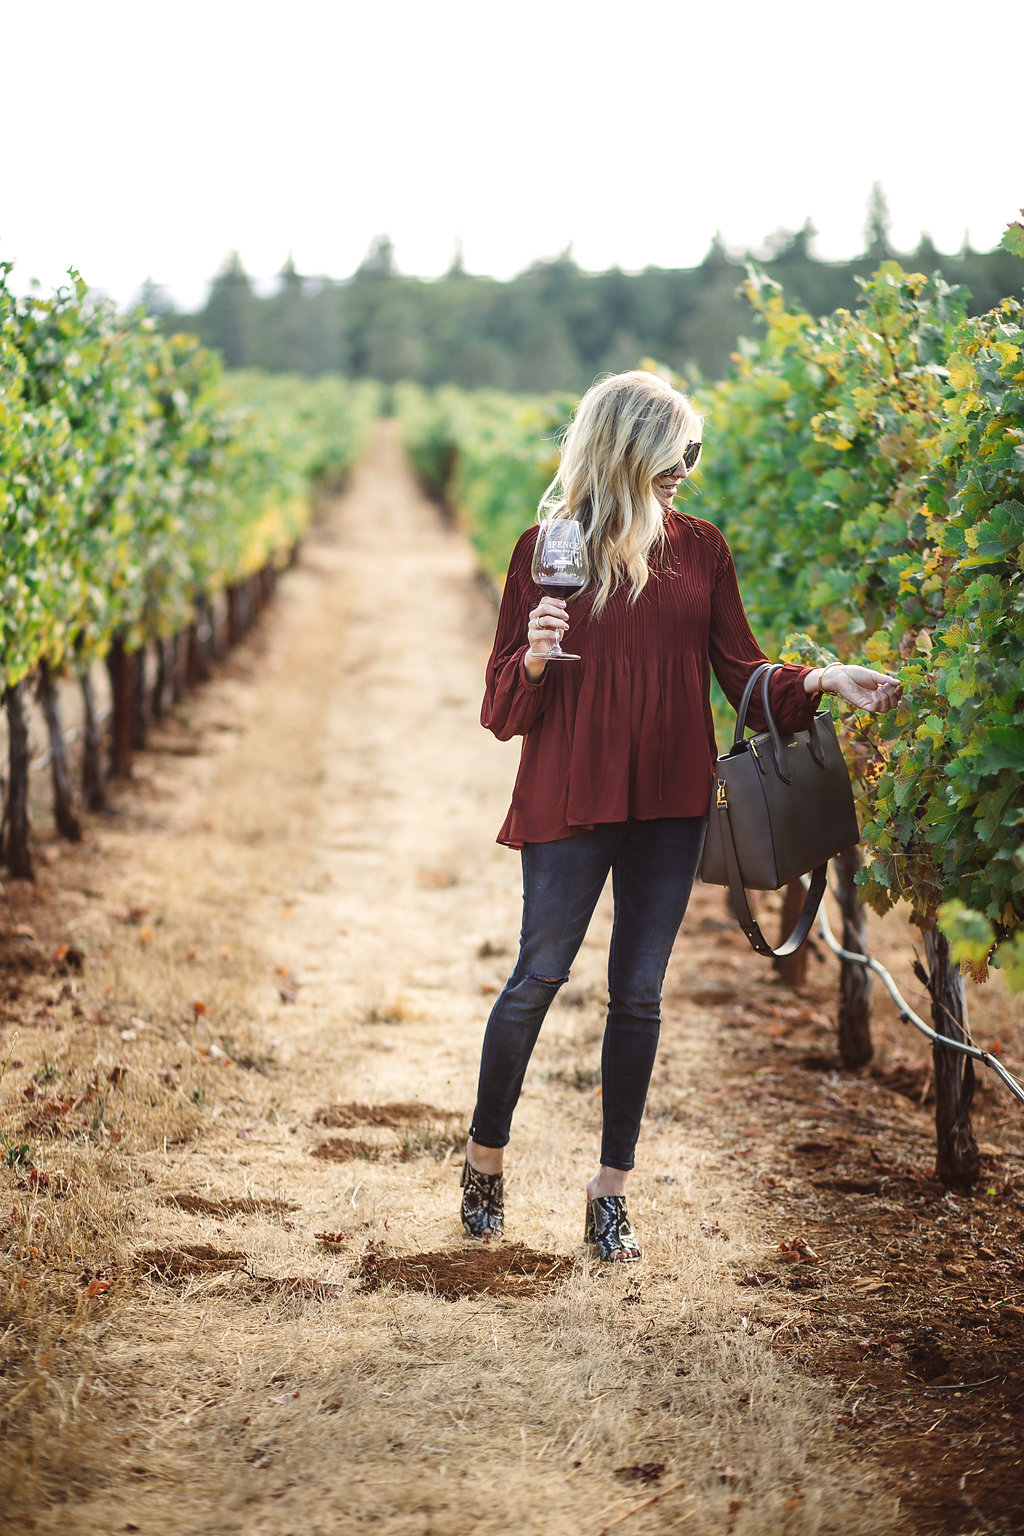 Rust Pleated Blouse Napa Outfit Idea For Winery Tastings